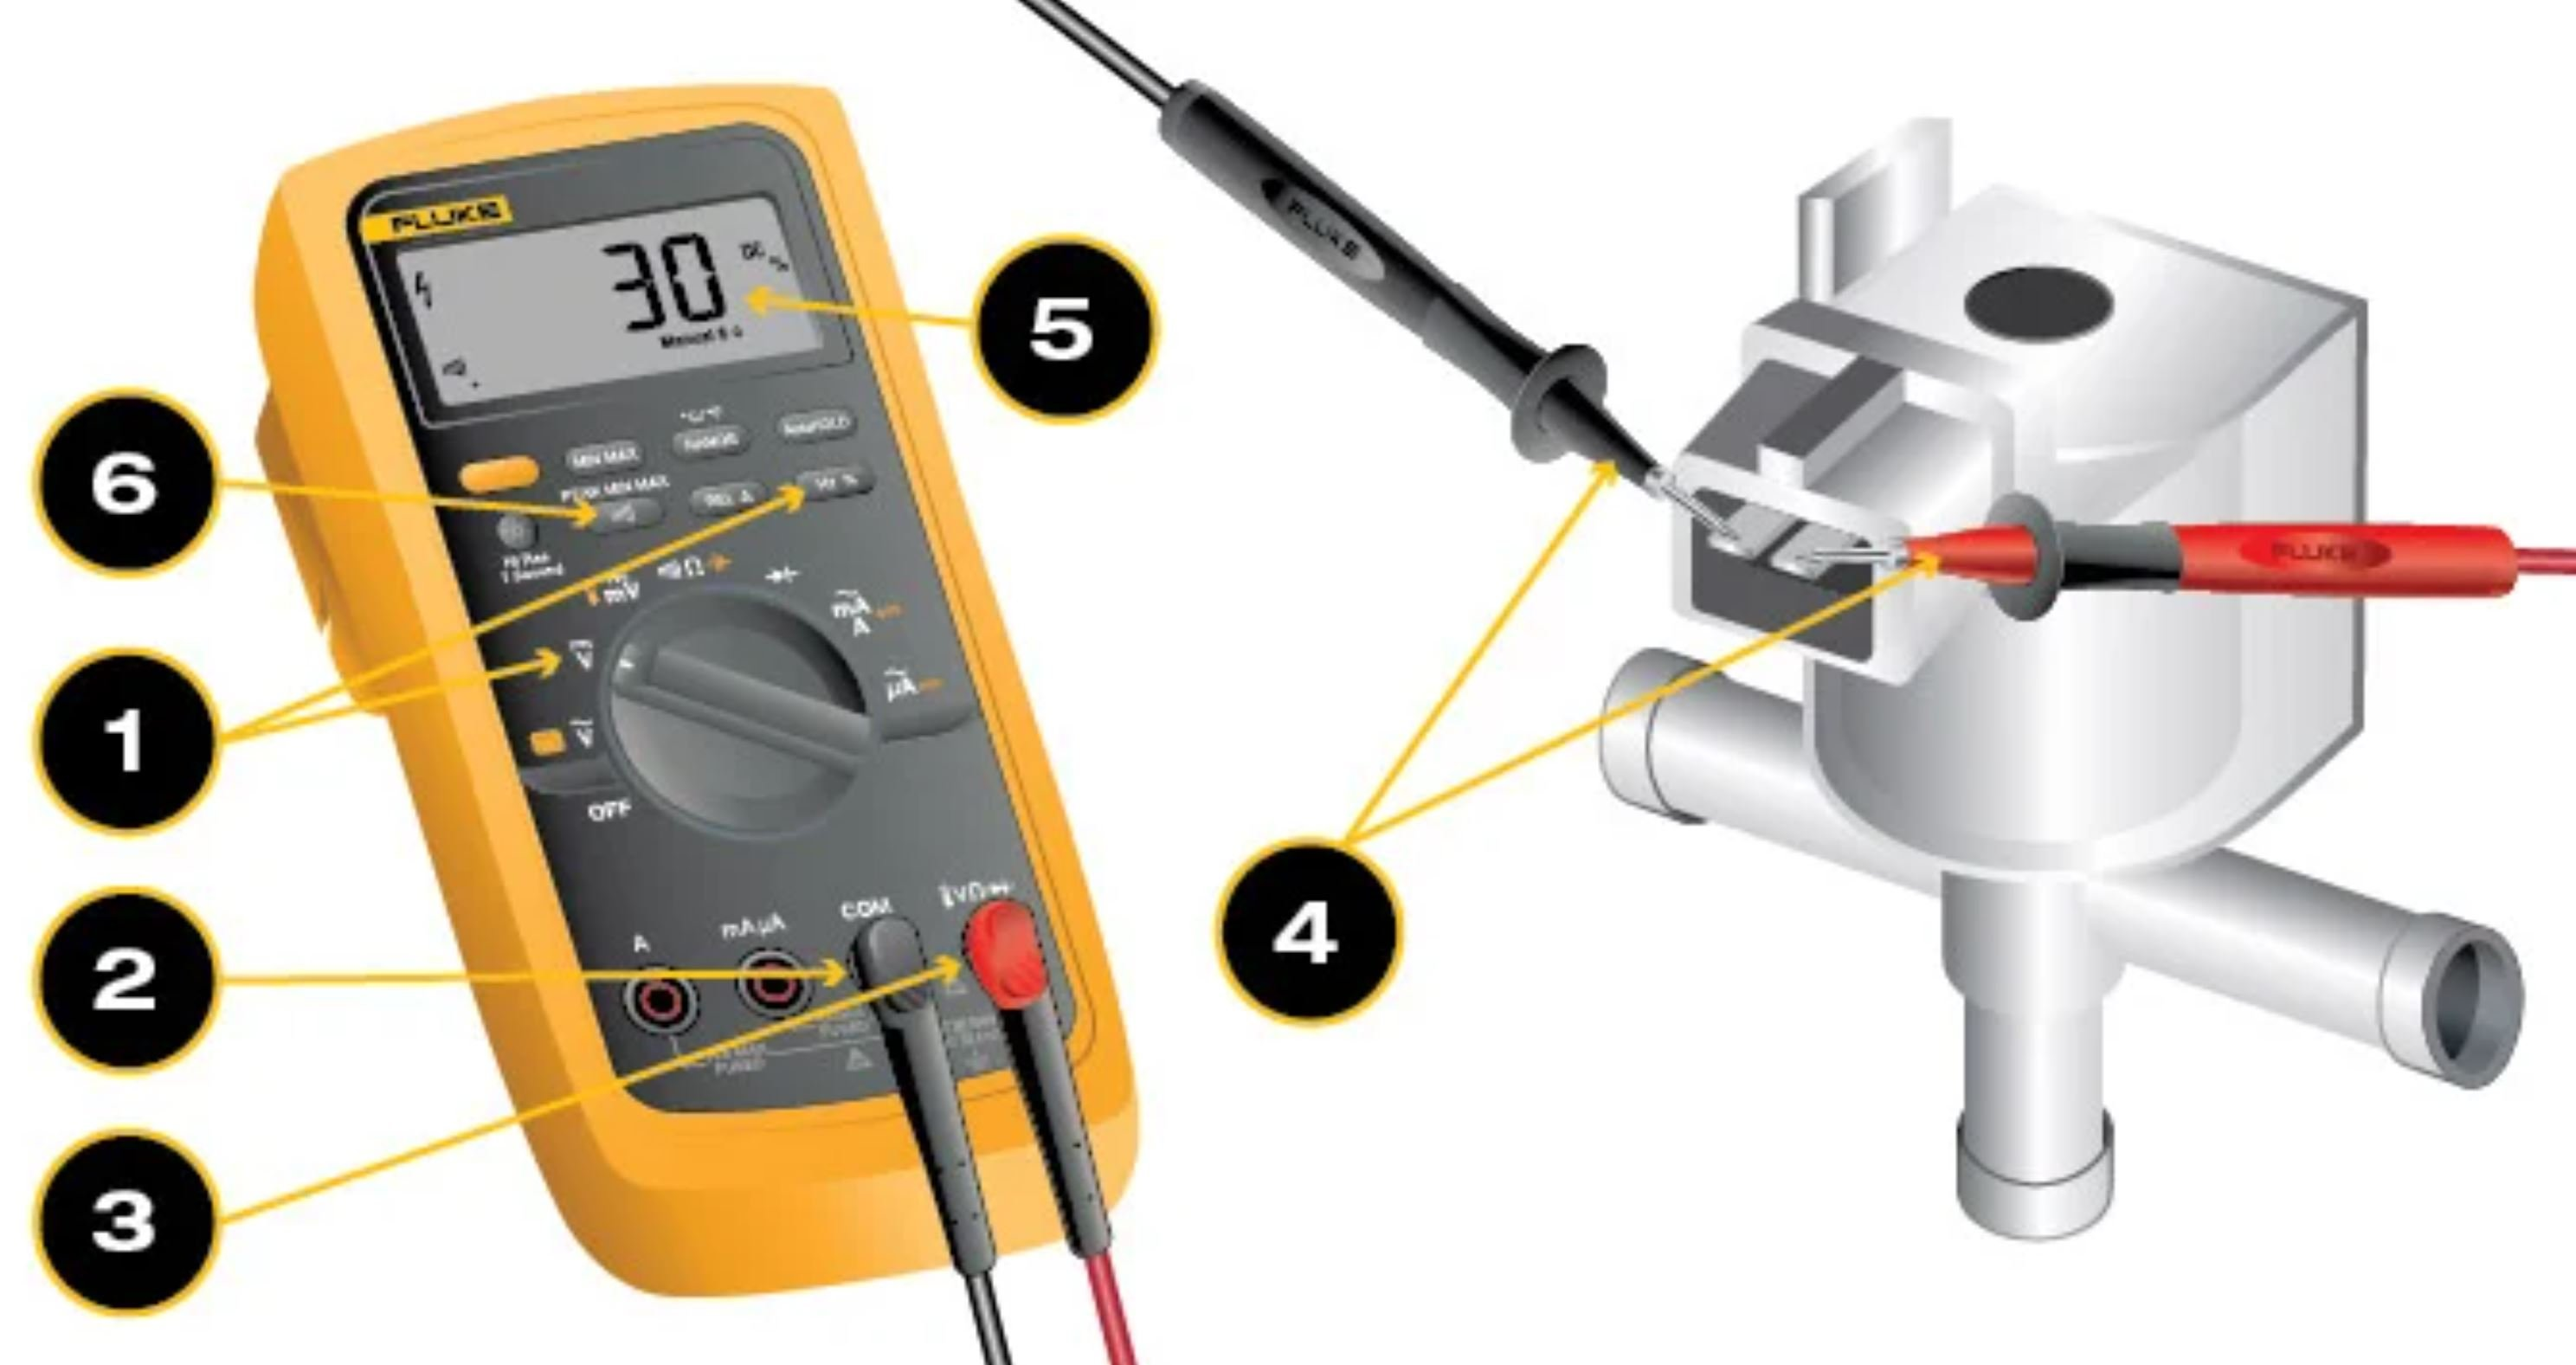 Steps for measuring duty cycle with a digital multimeter